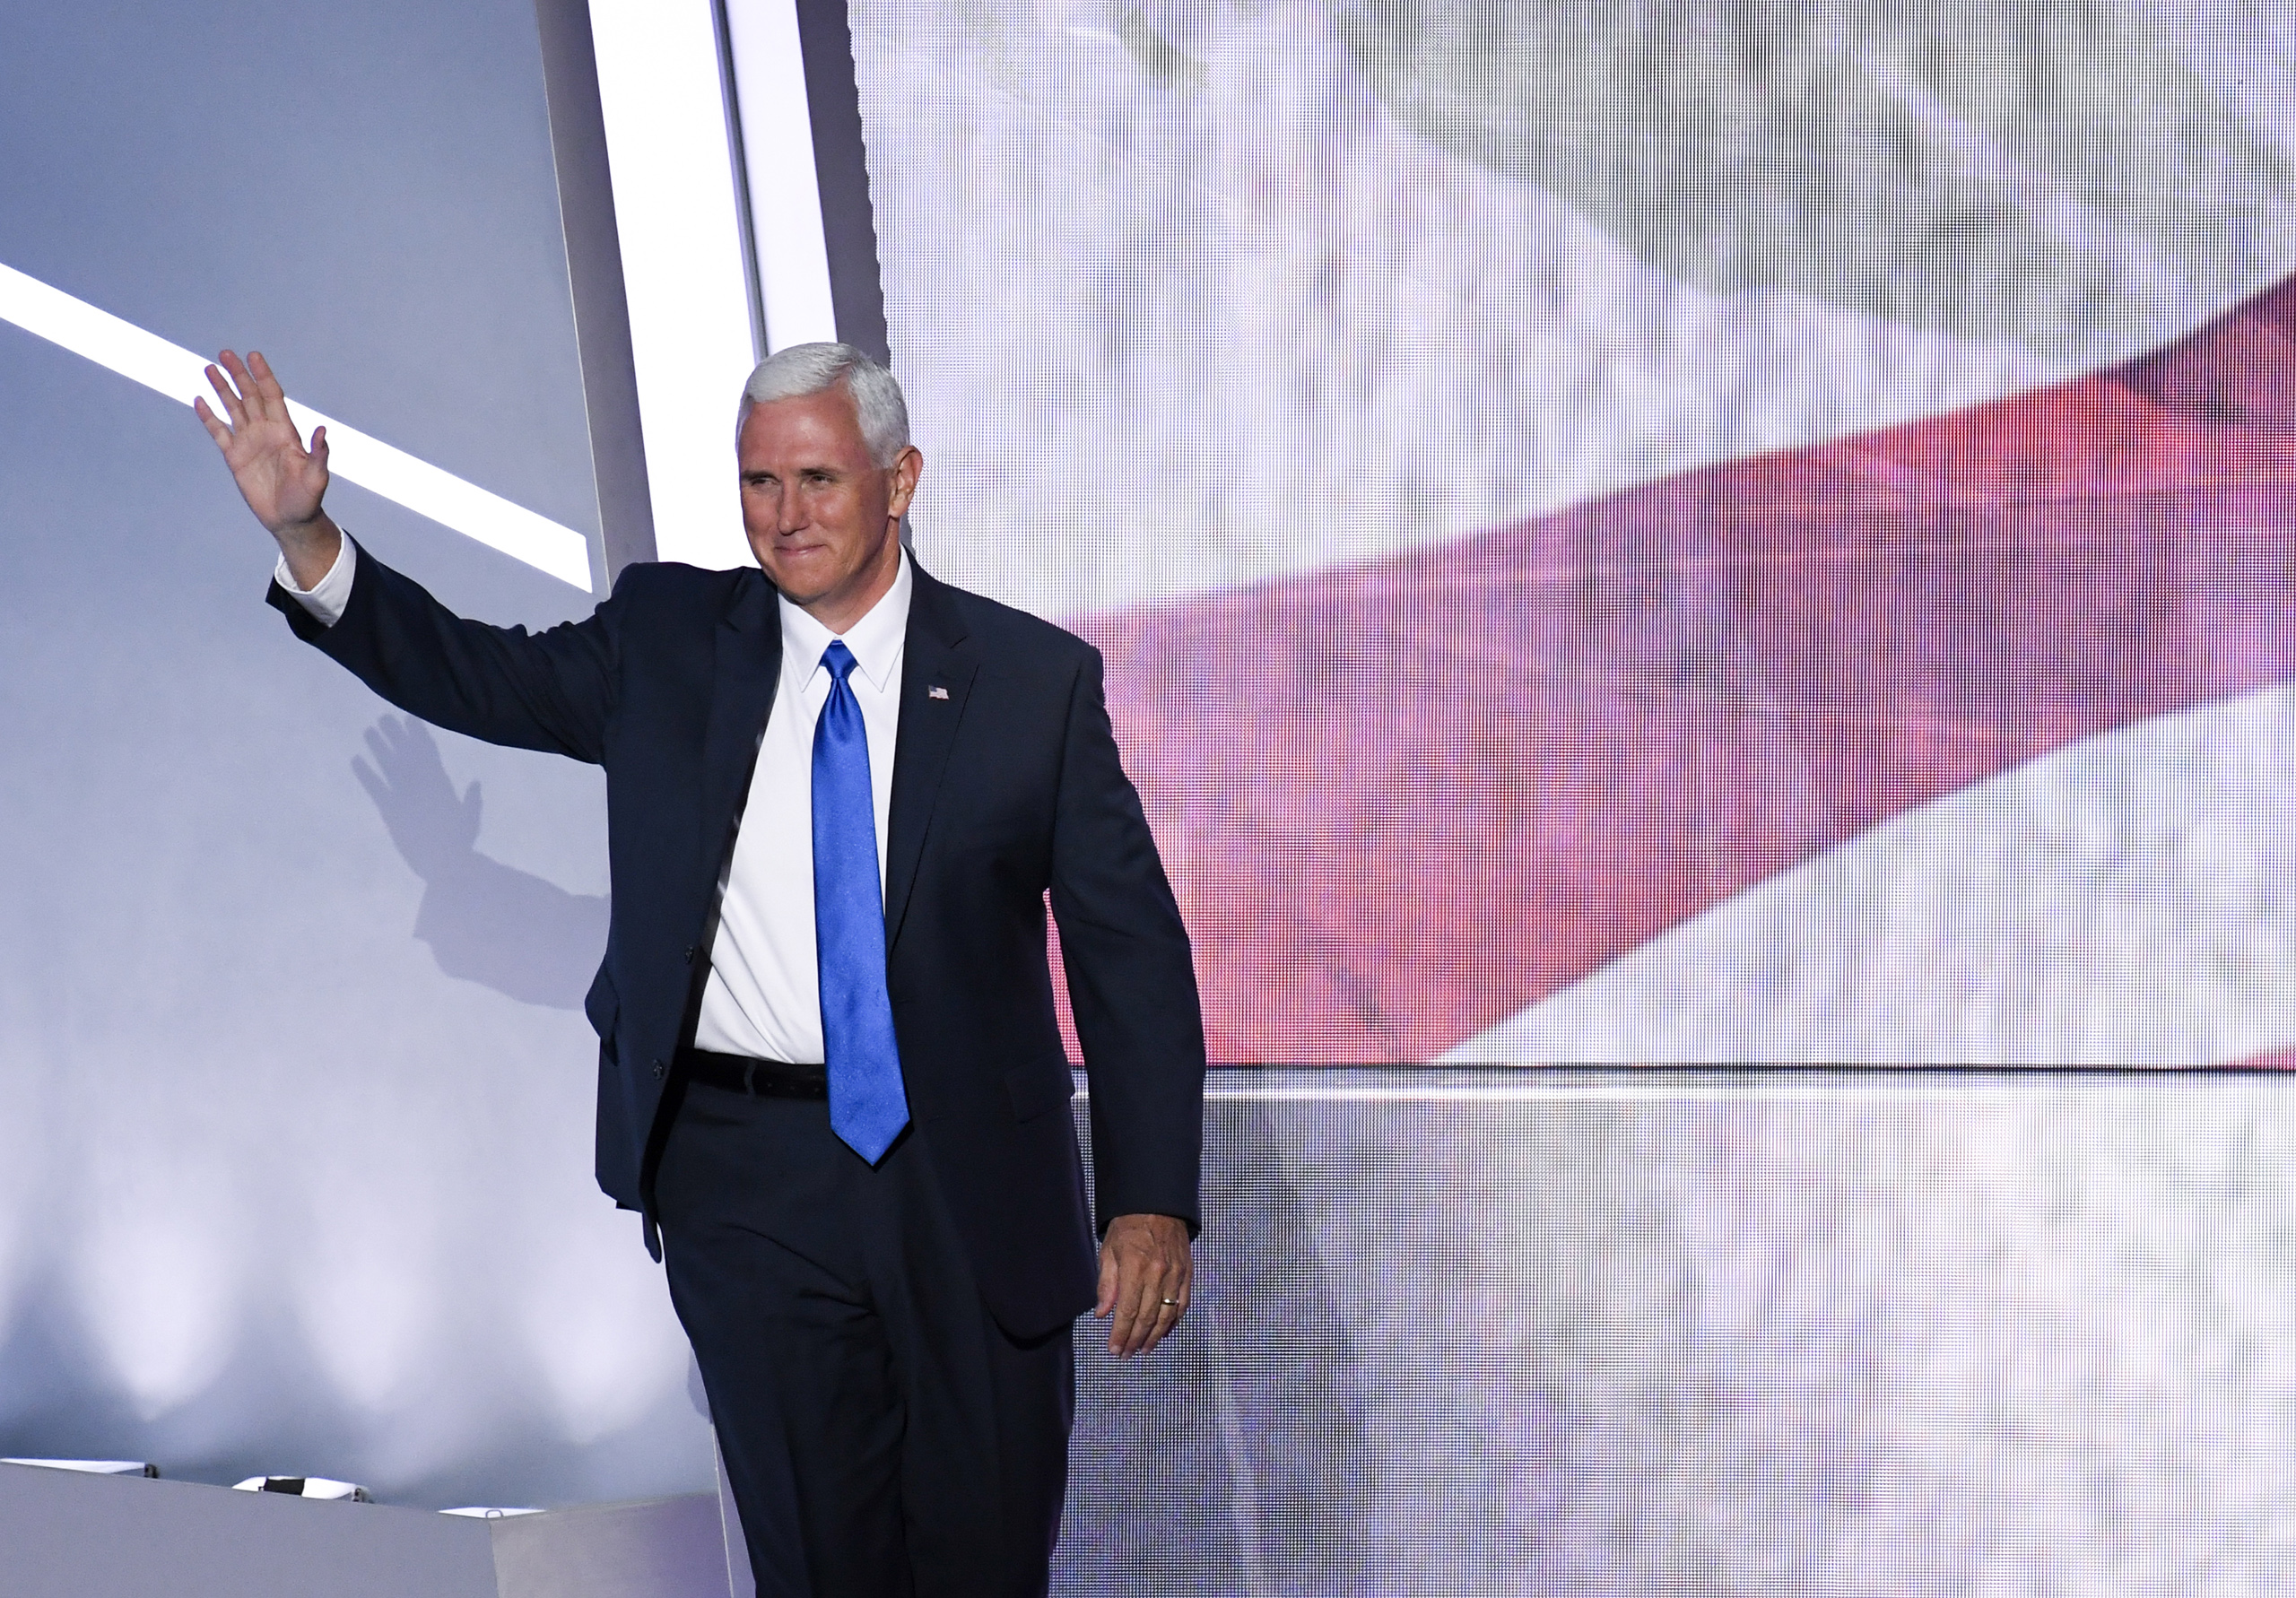 Indiana Gov. Mike Pence, and Vice Presidential nominee, takes the stage to speak at the 2016 Republican National Convention in Cleveland on July 20, 2016.